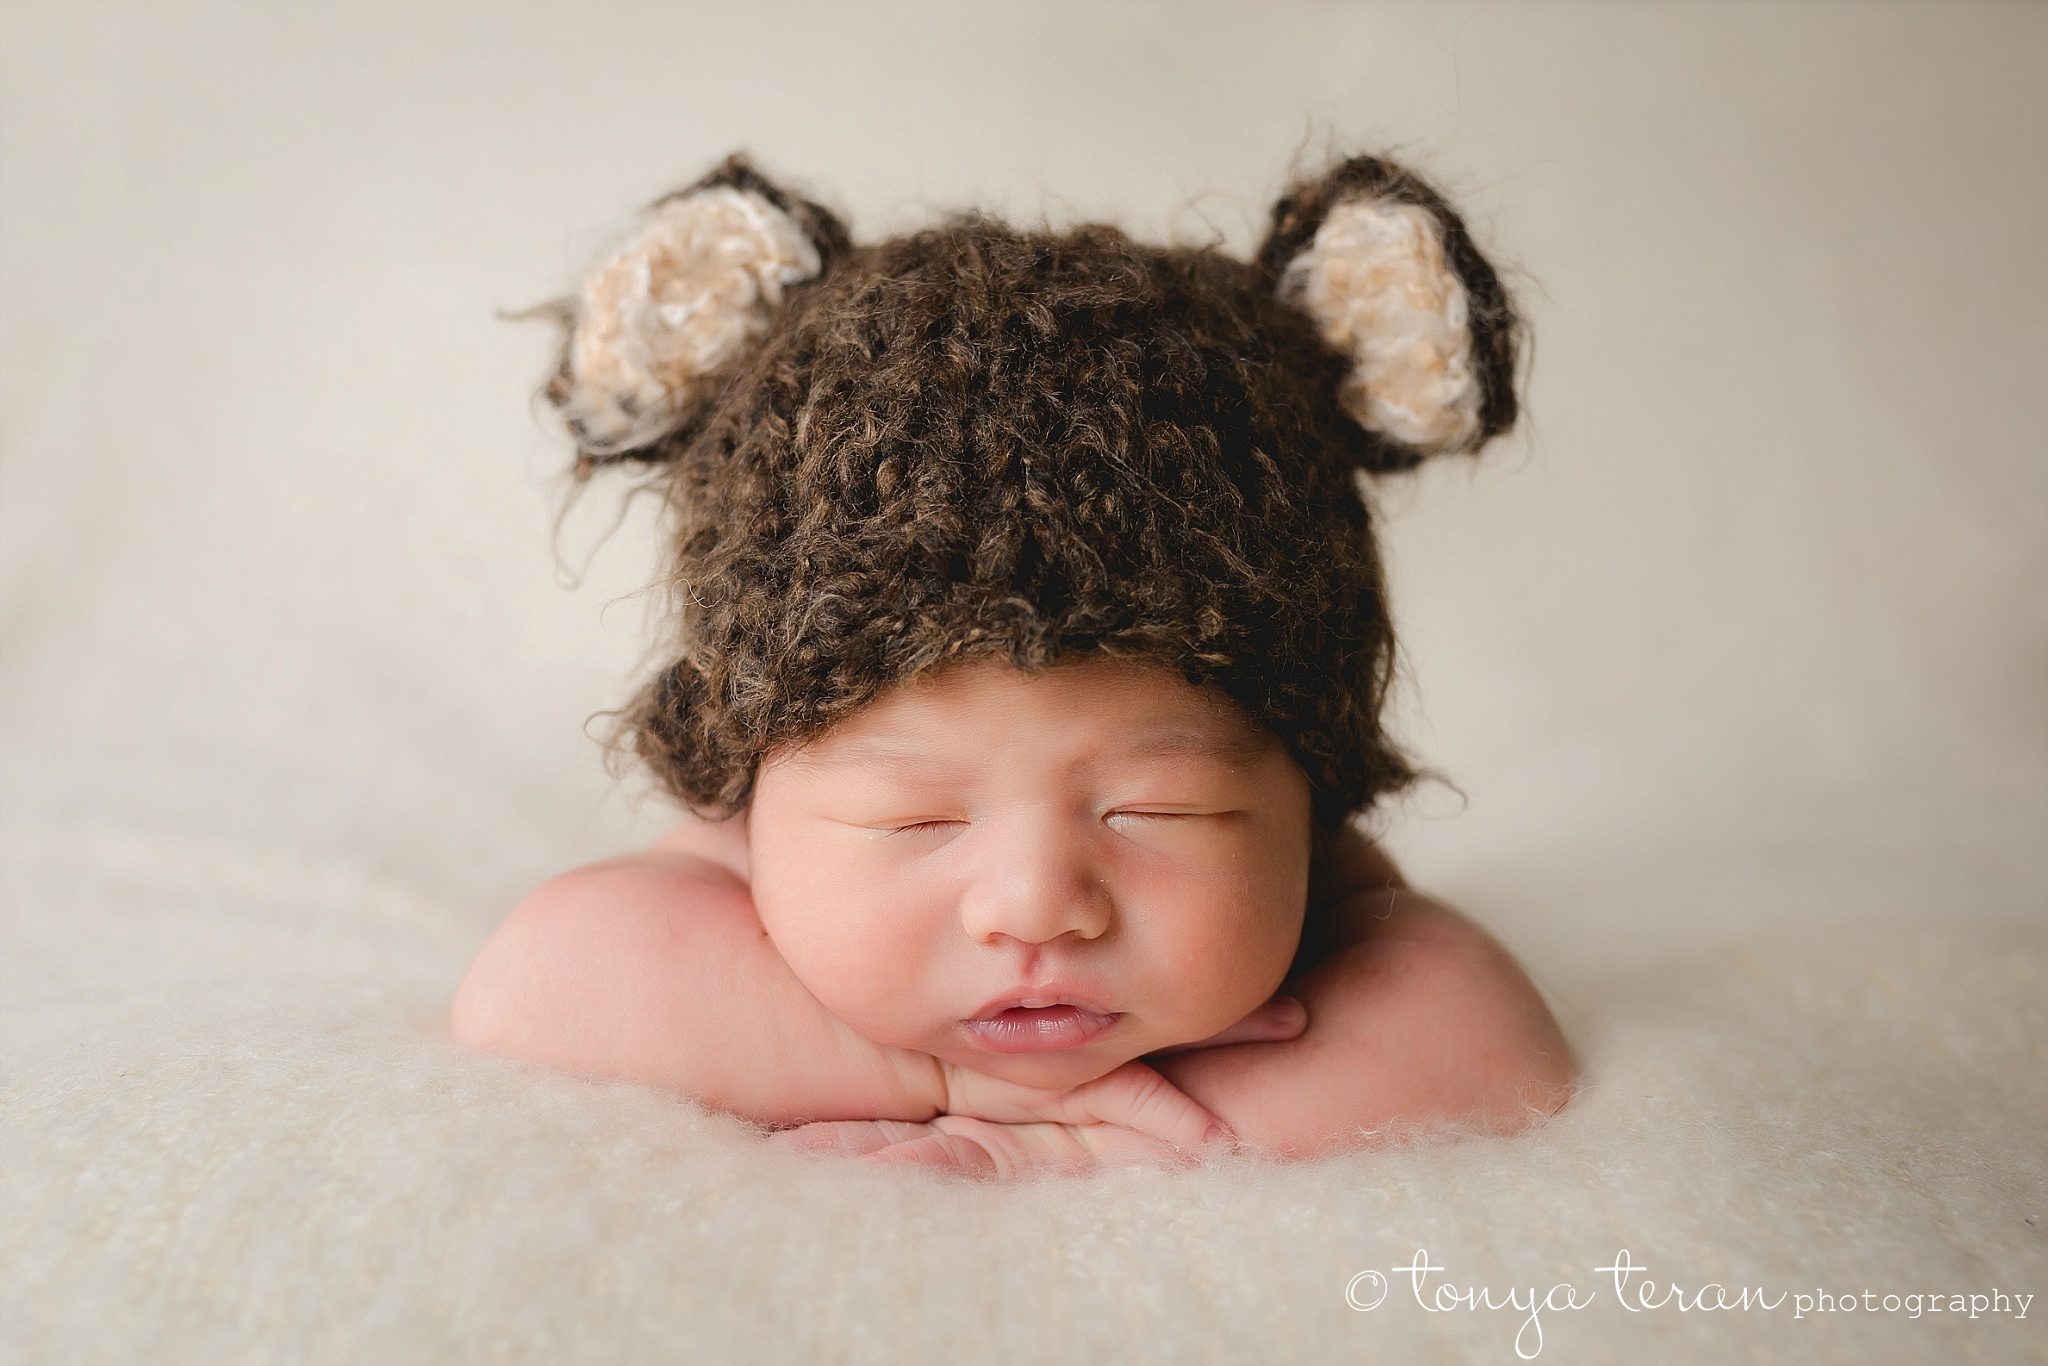 Newborn Photo Session | Tonya Teran Photography, Washington, DC Newborn, Baby, and Family Photographer